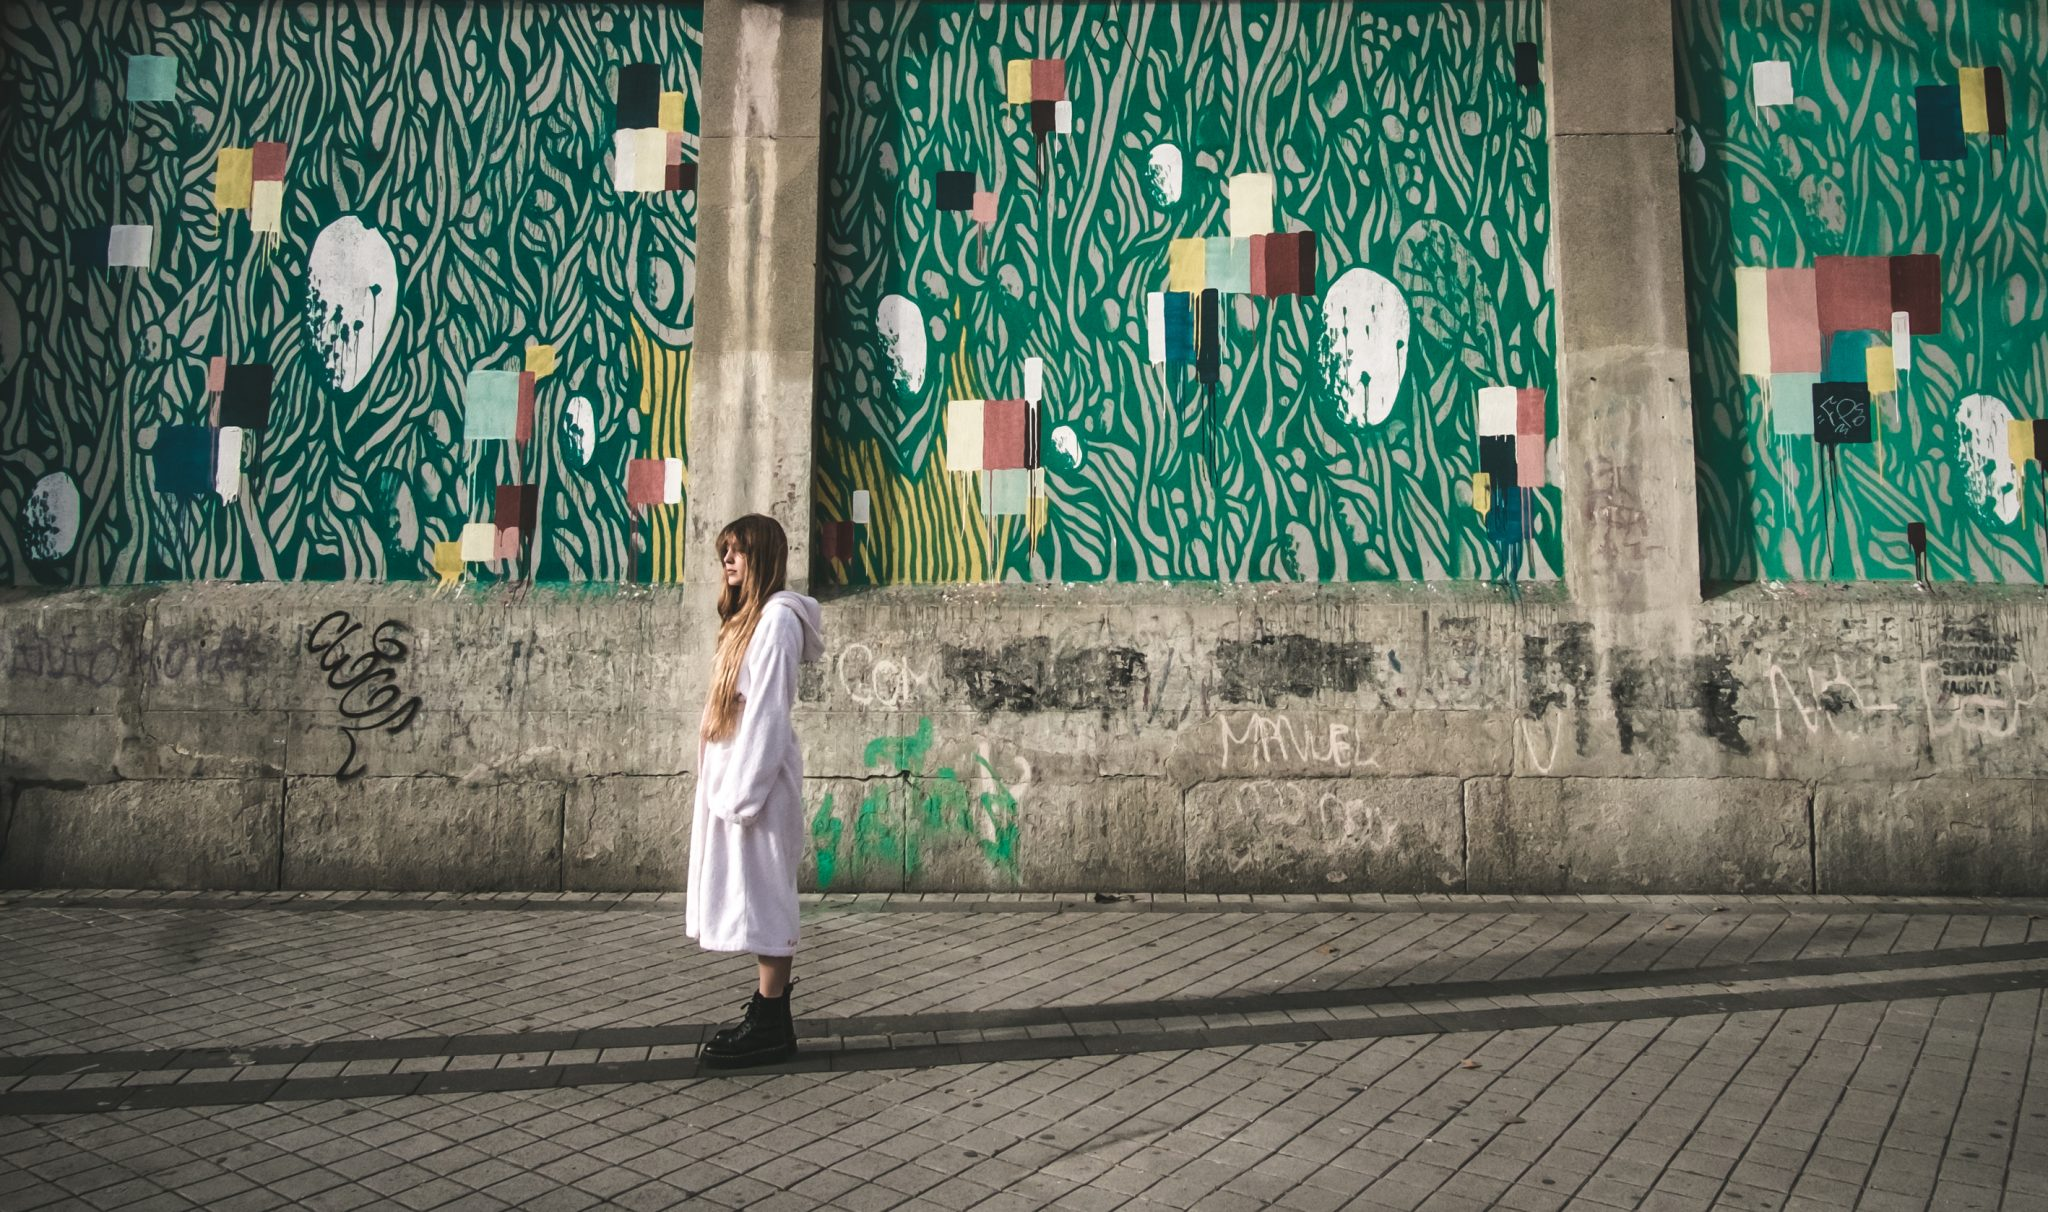 Young women posing in front of a painted wall at the tabacalera of madrid photo by jo Kassis